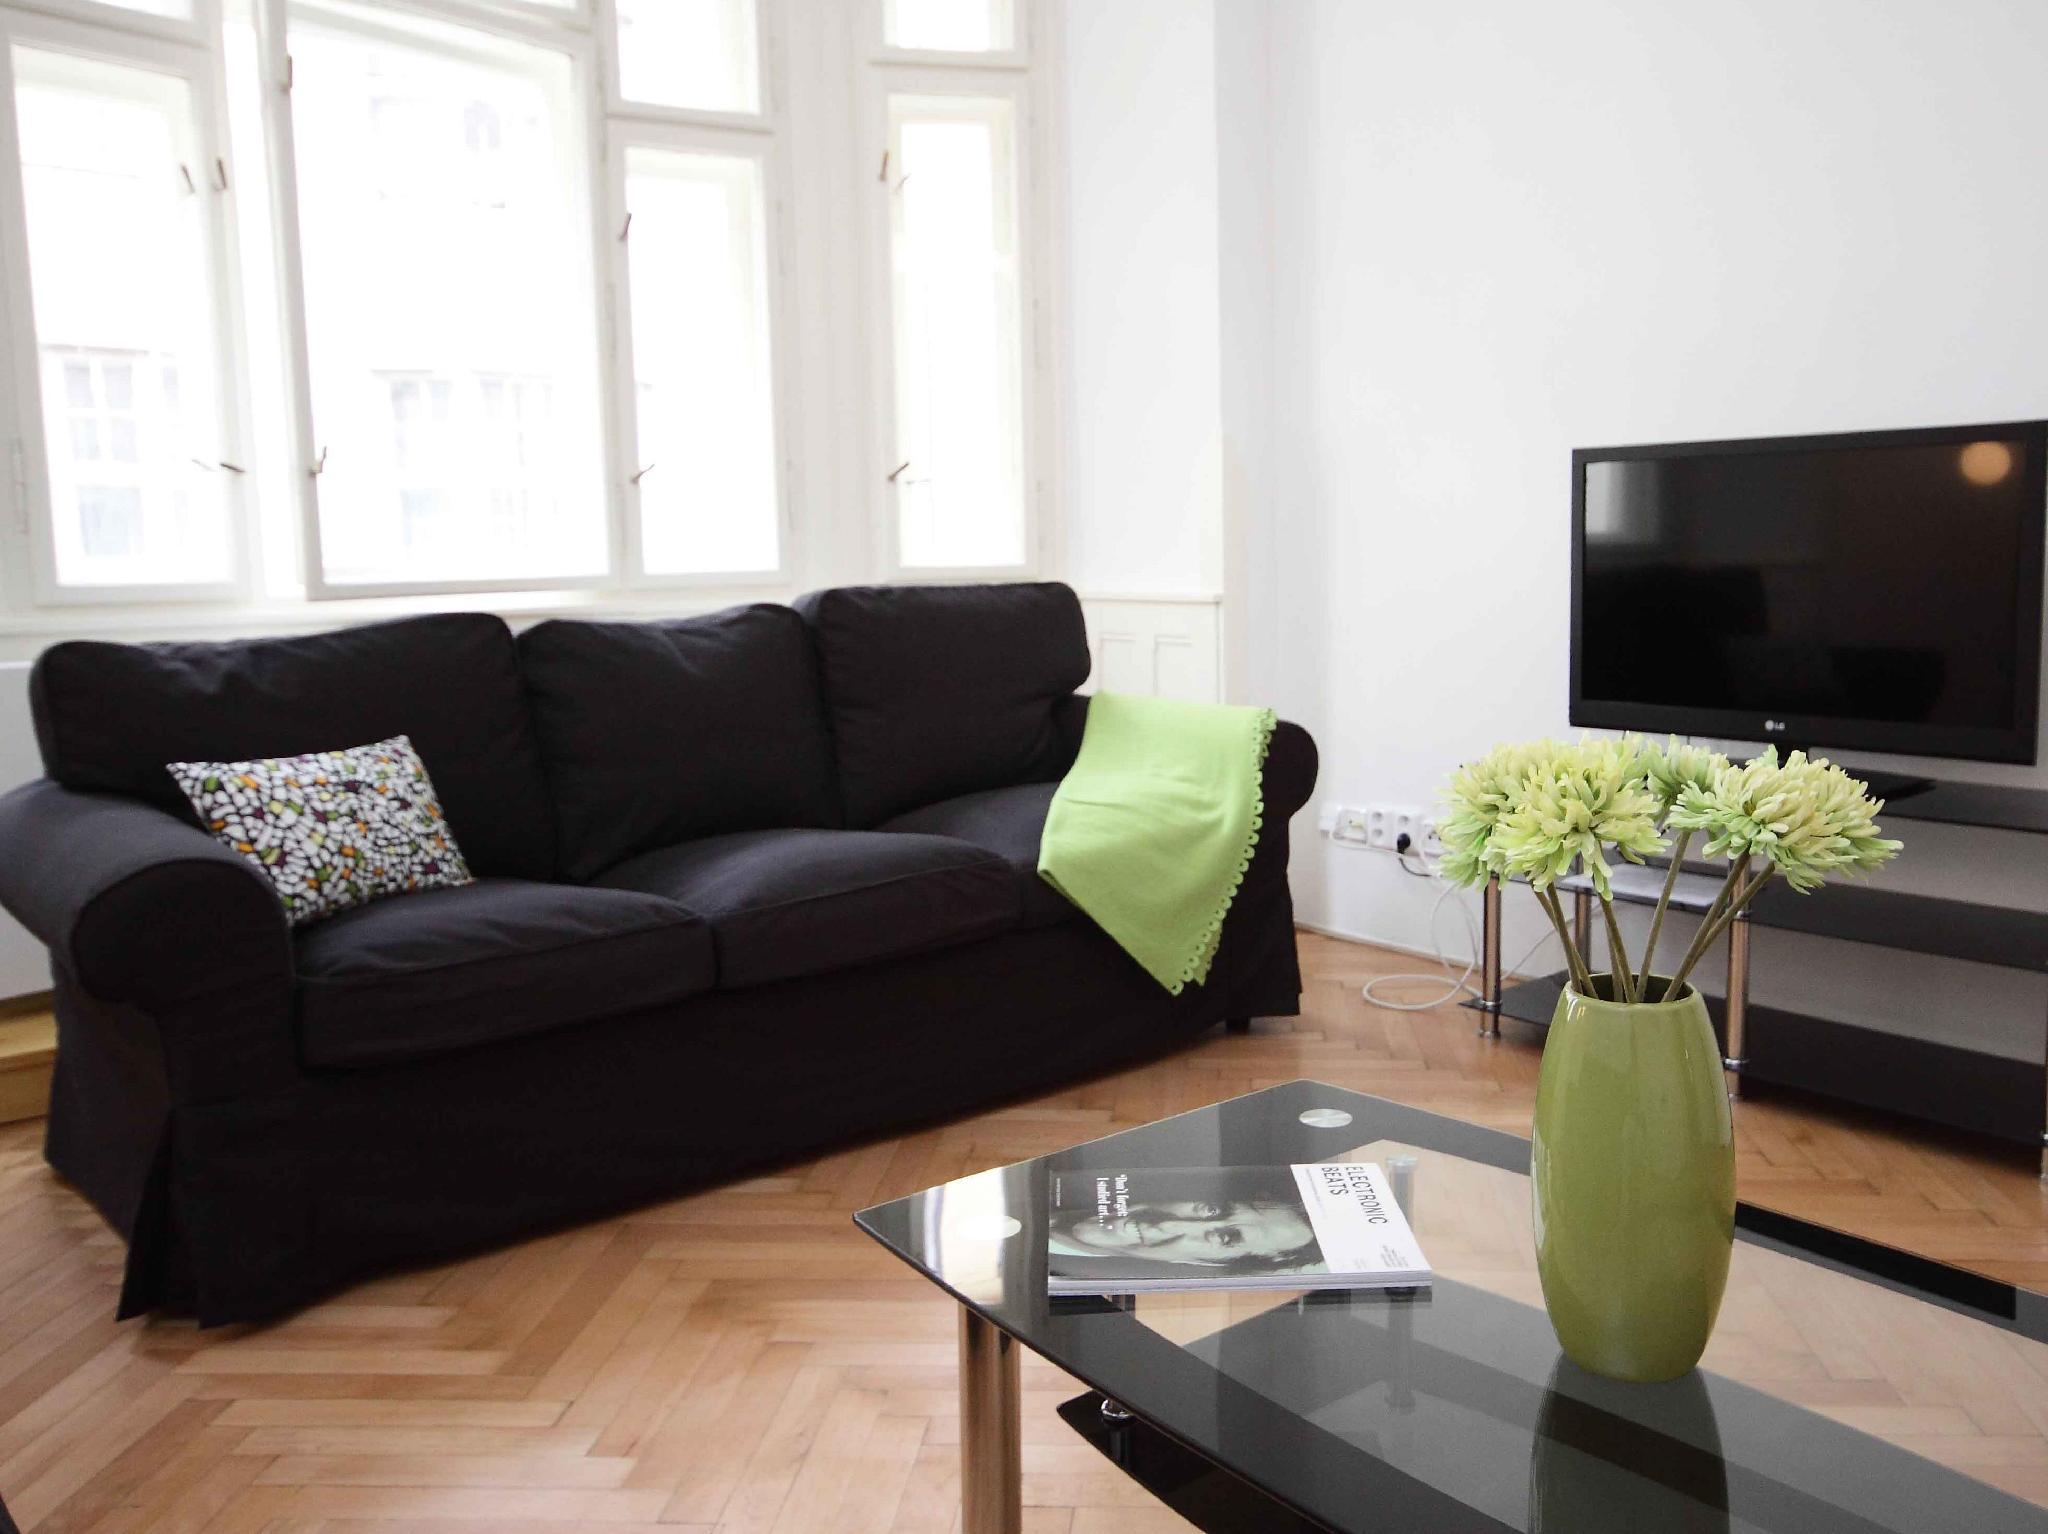 Apartament de Dues Habitacions (Two Bedroom Apartment)